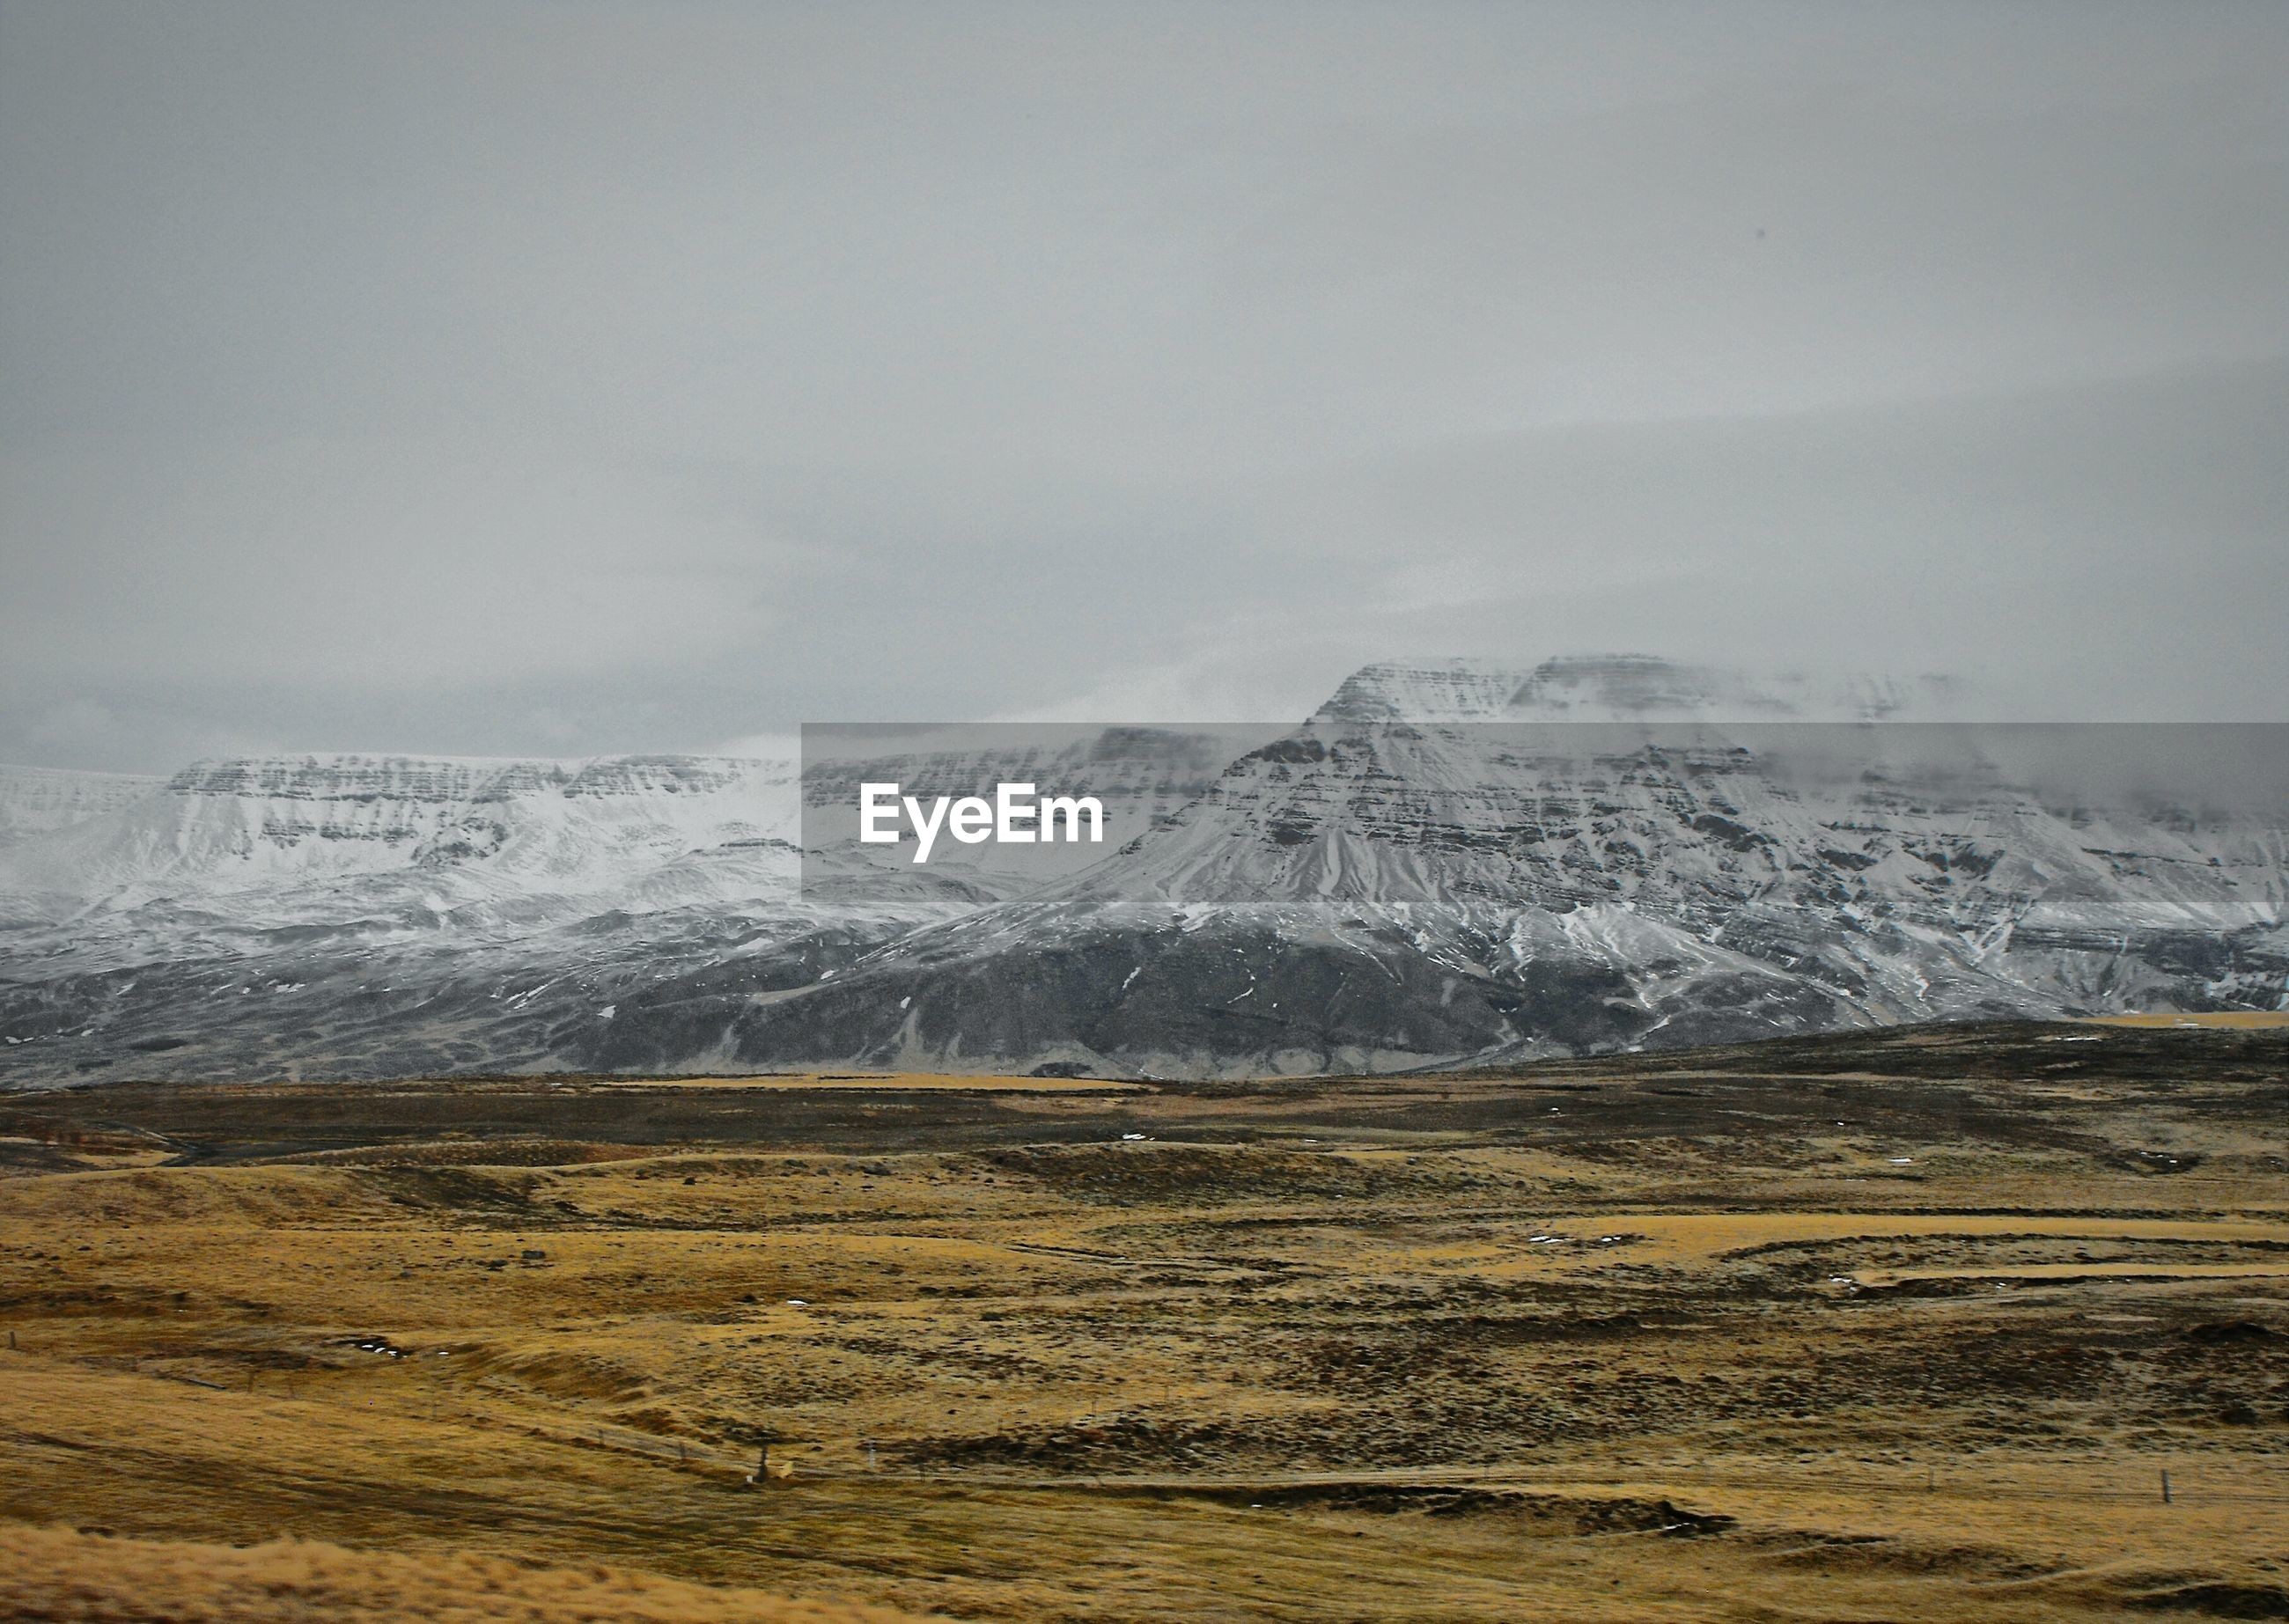 Barren landscape with magnificent rock formations in background